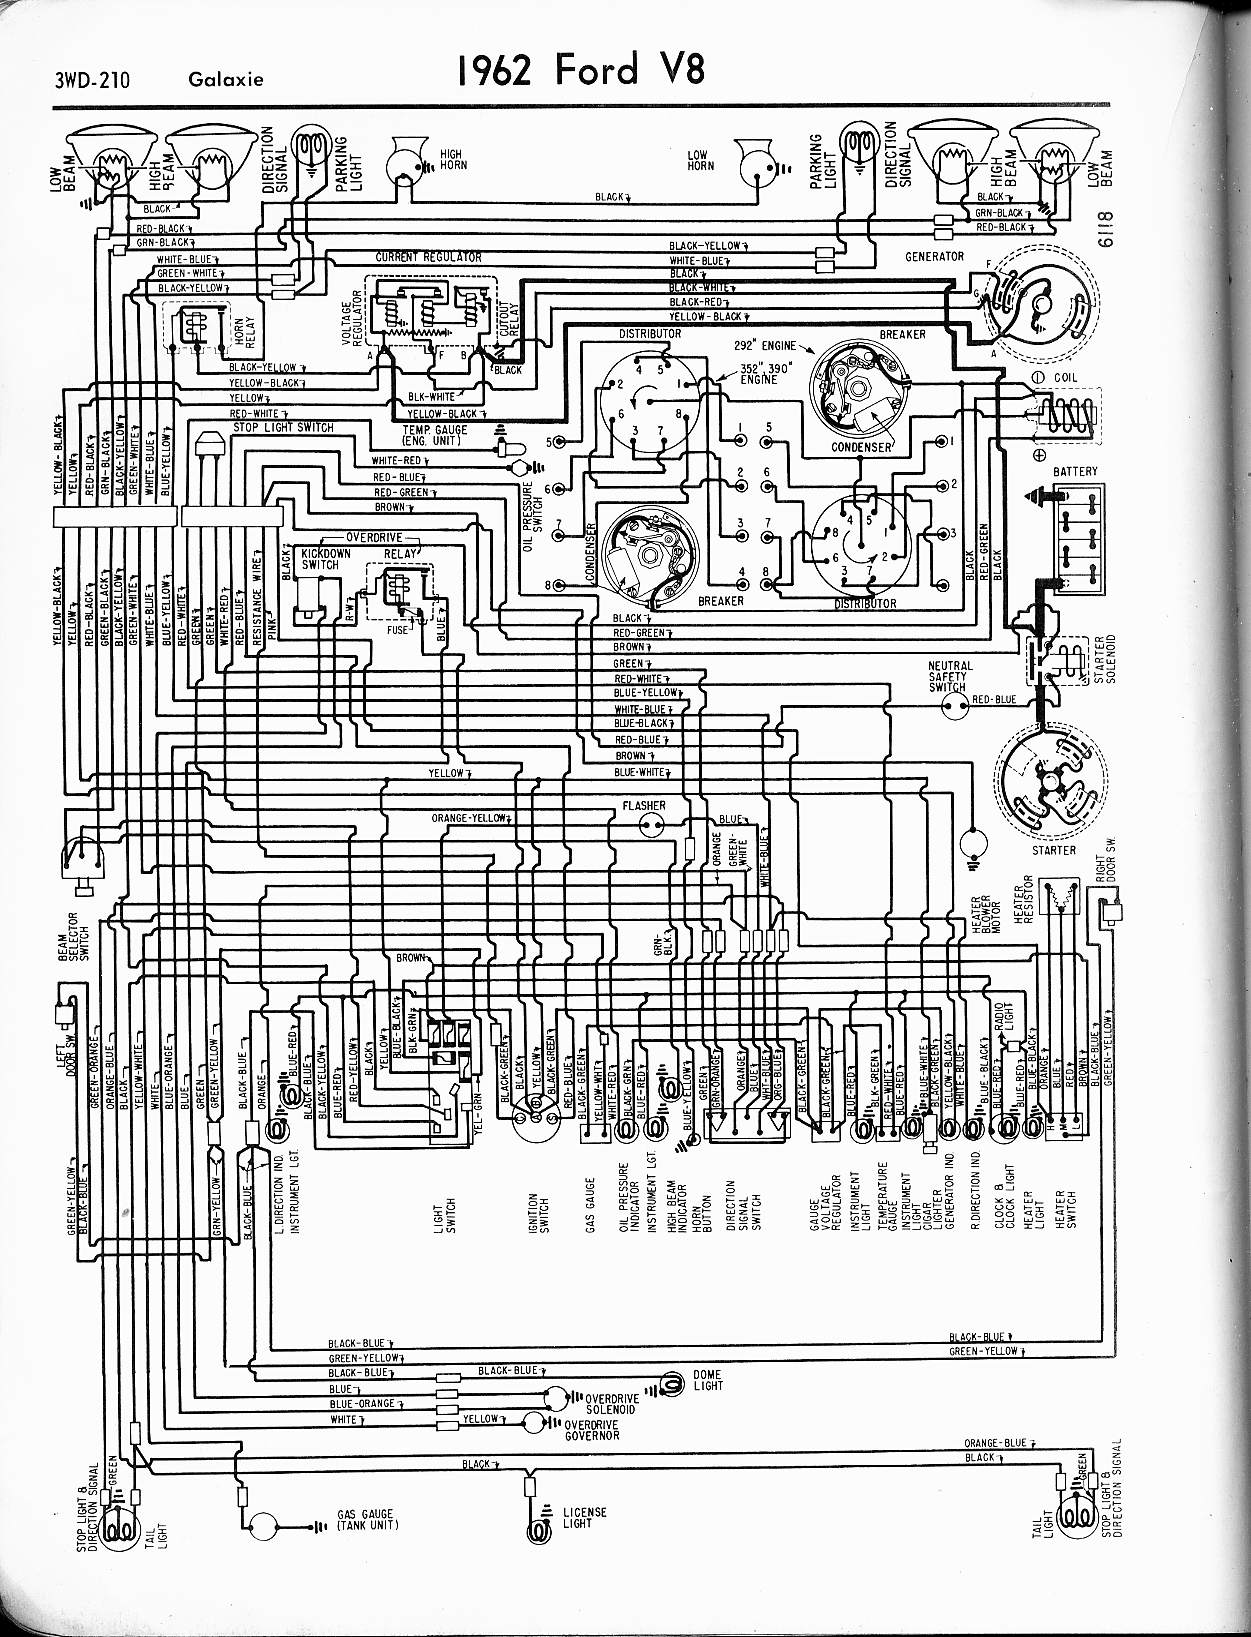 1960 Ford Thunderbird Wiring Diagram Trusted F100 56 T Bird Schematics 1970 Dodge Challenger